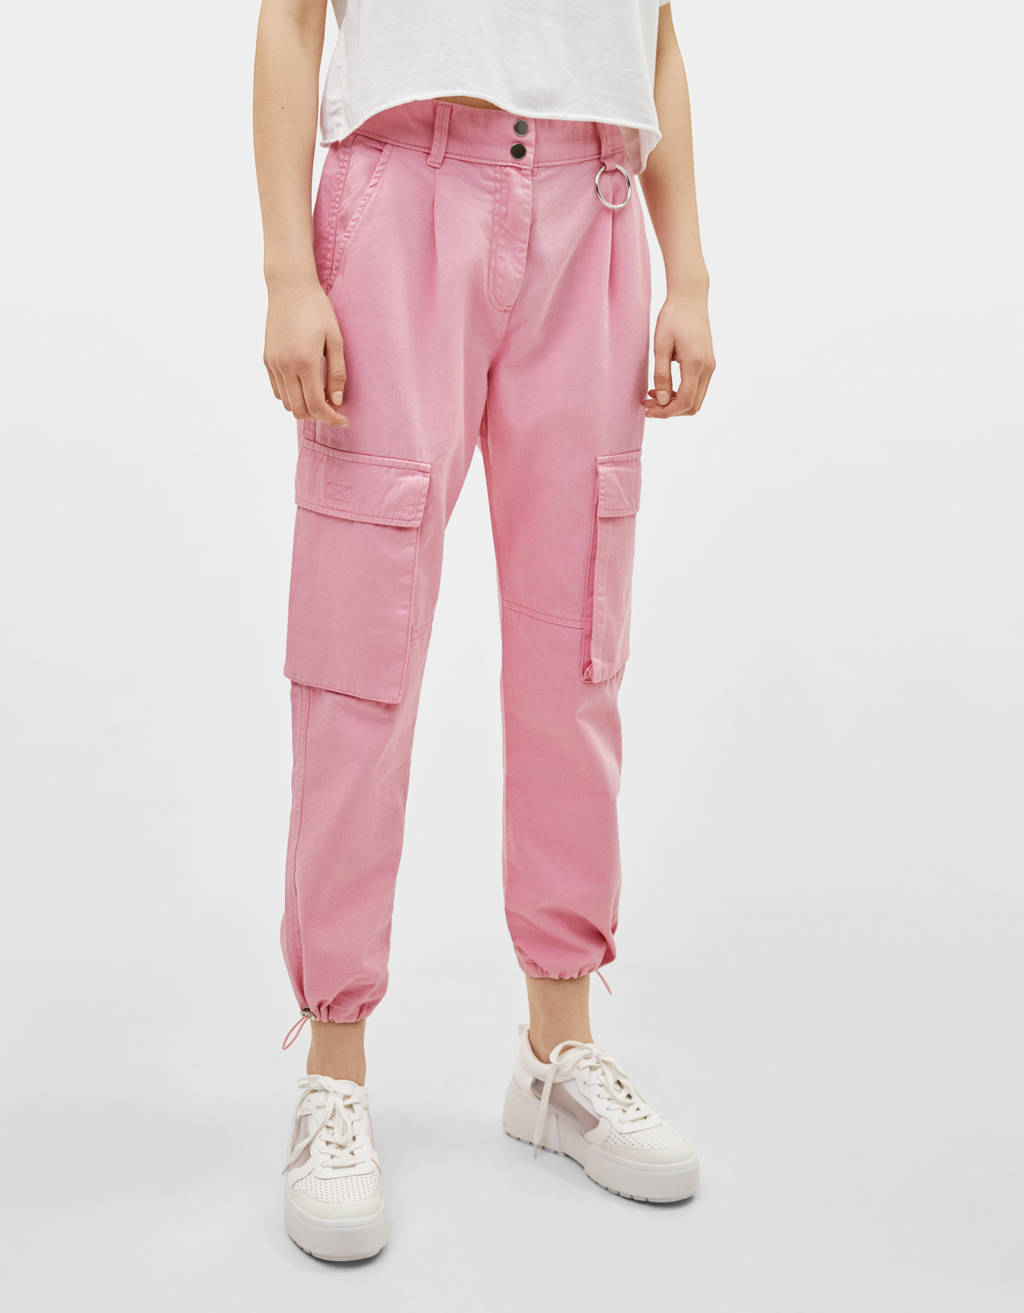 27e002b59be Women s Trousers - Spring Summer 2019